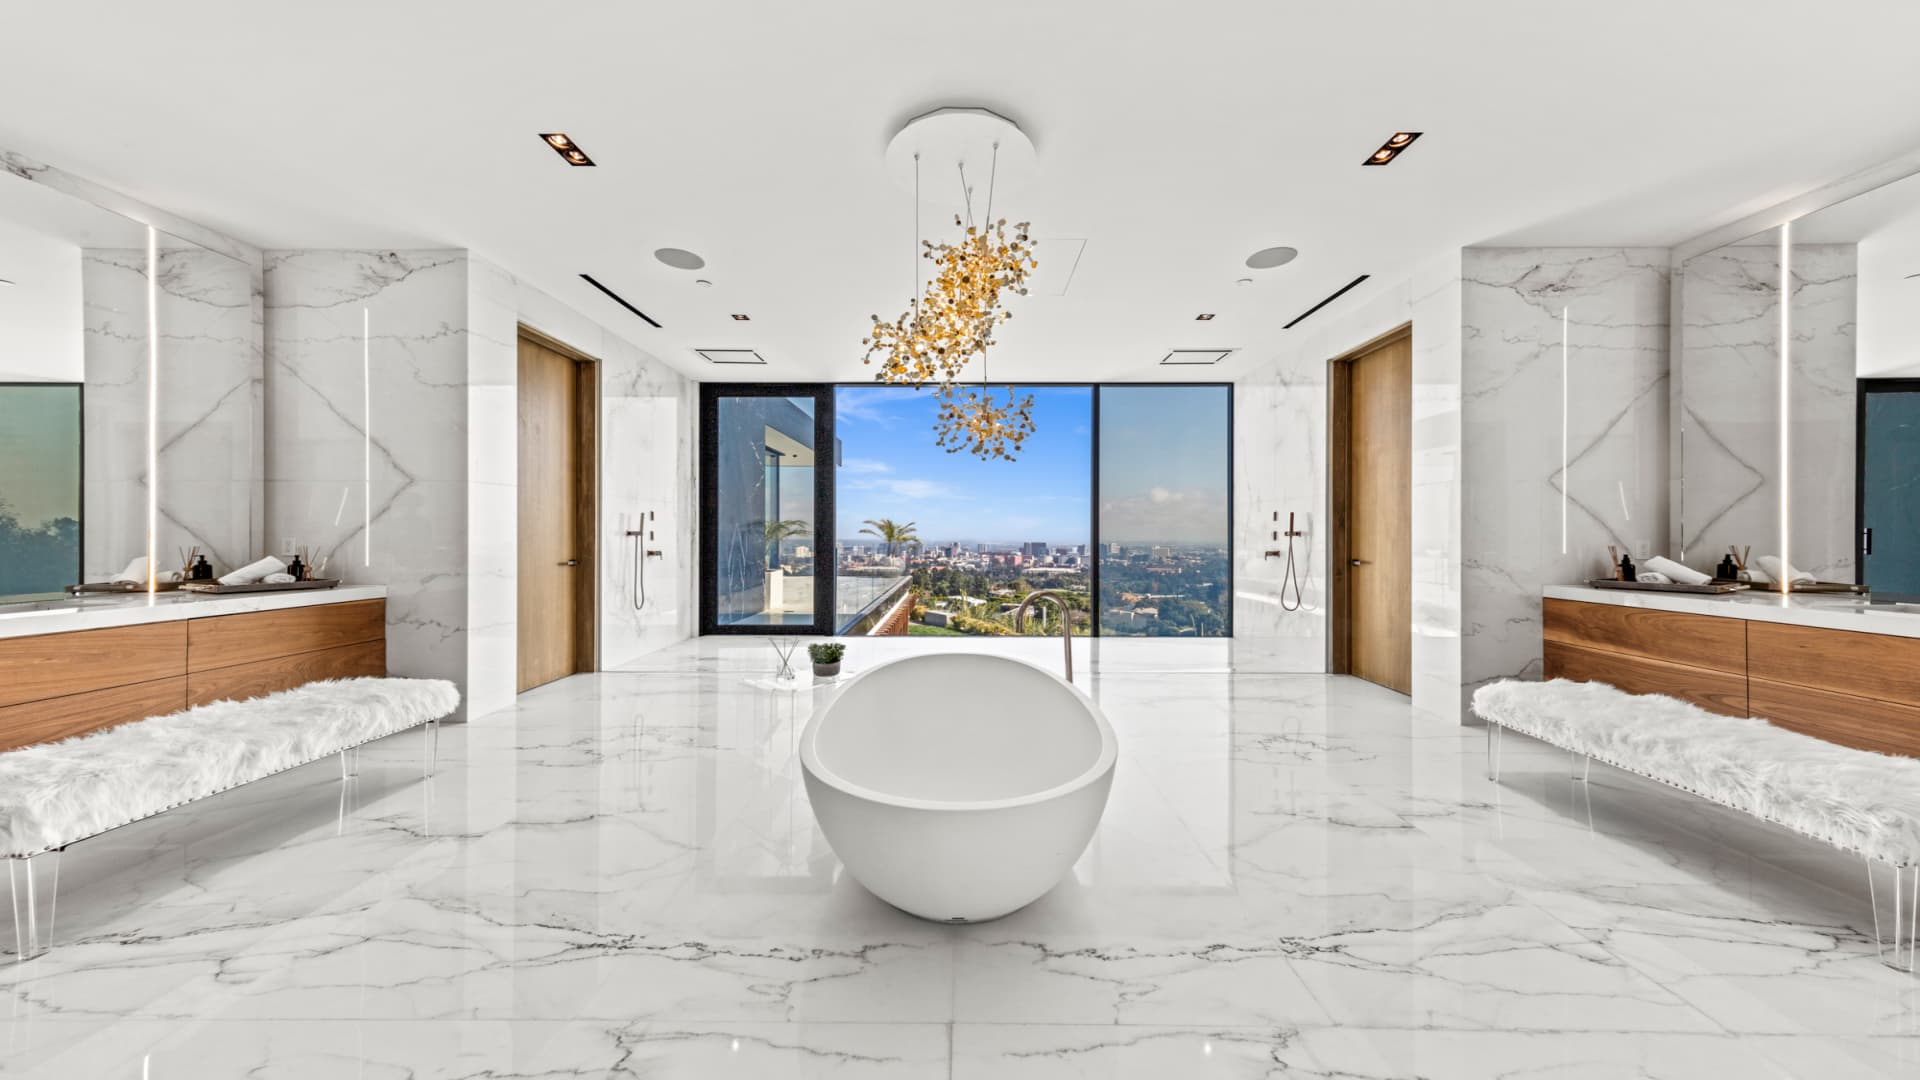 The owner's suite bath is clad in bookmatched white Carrara marble.